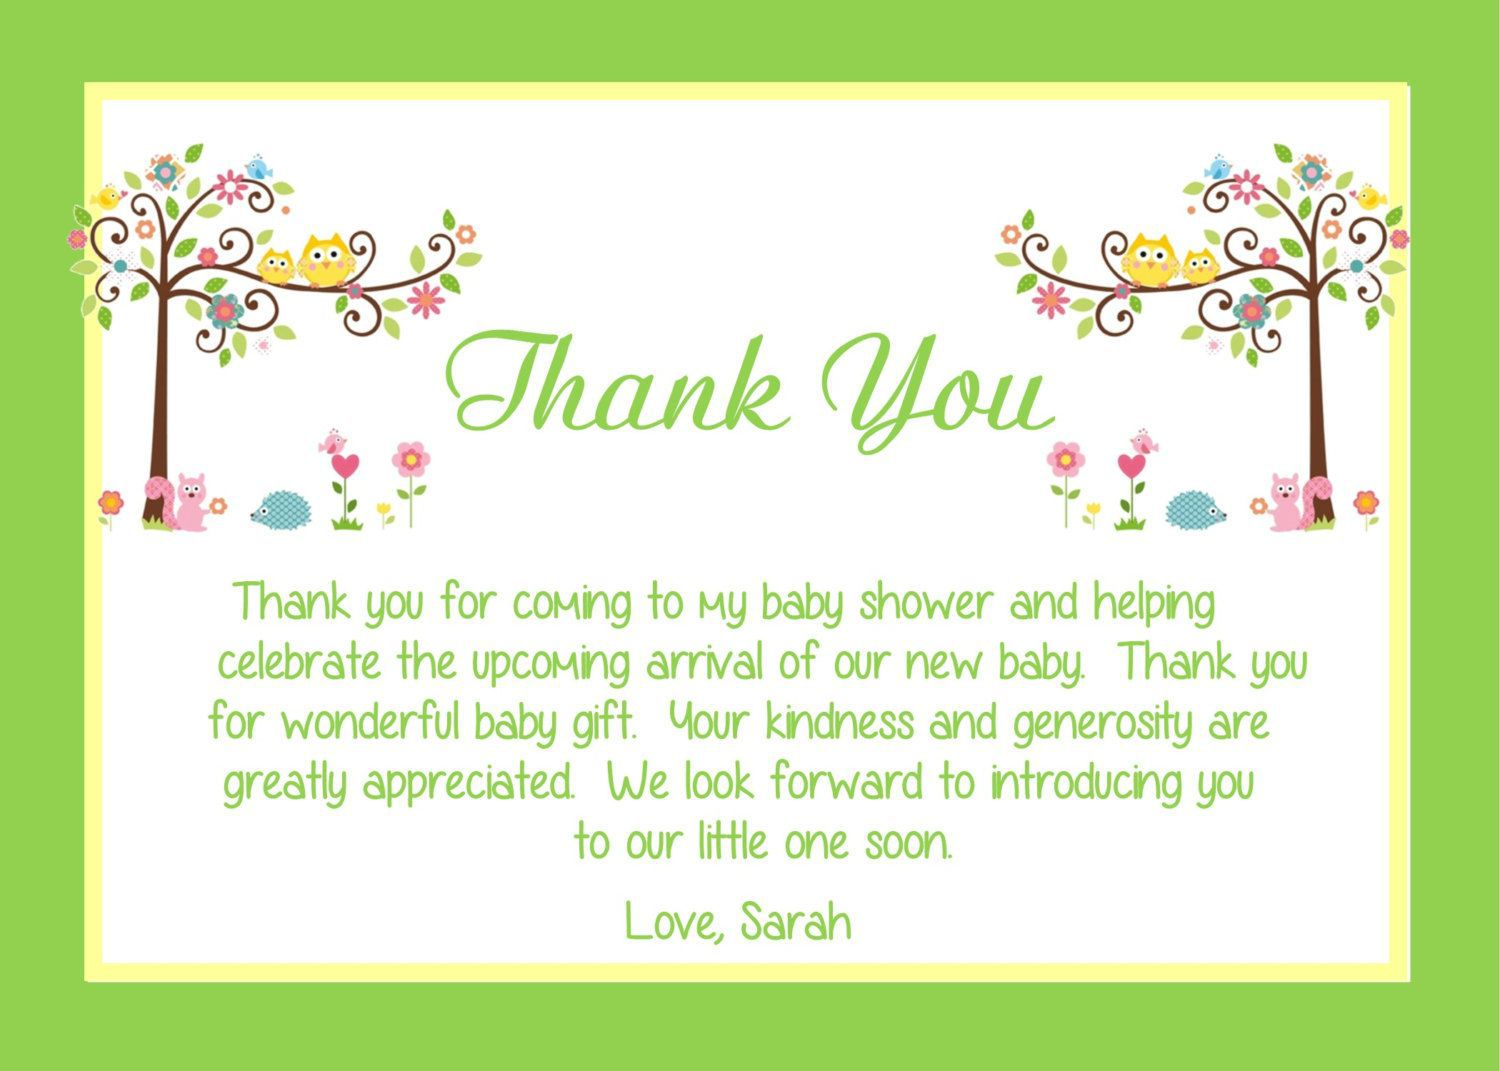 000 Stupendou Thank You Note Template Baby Shower Concept  Card Free Sample For Letter GiftFull